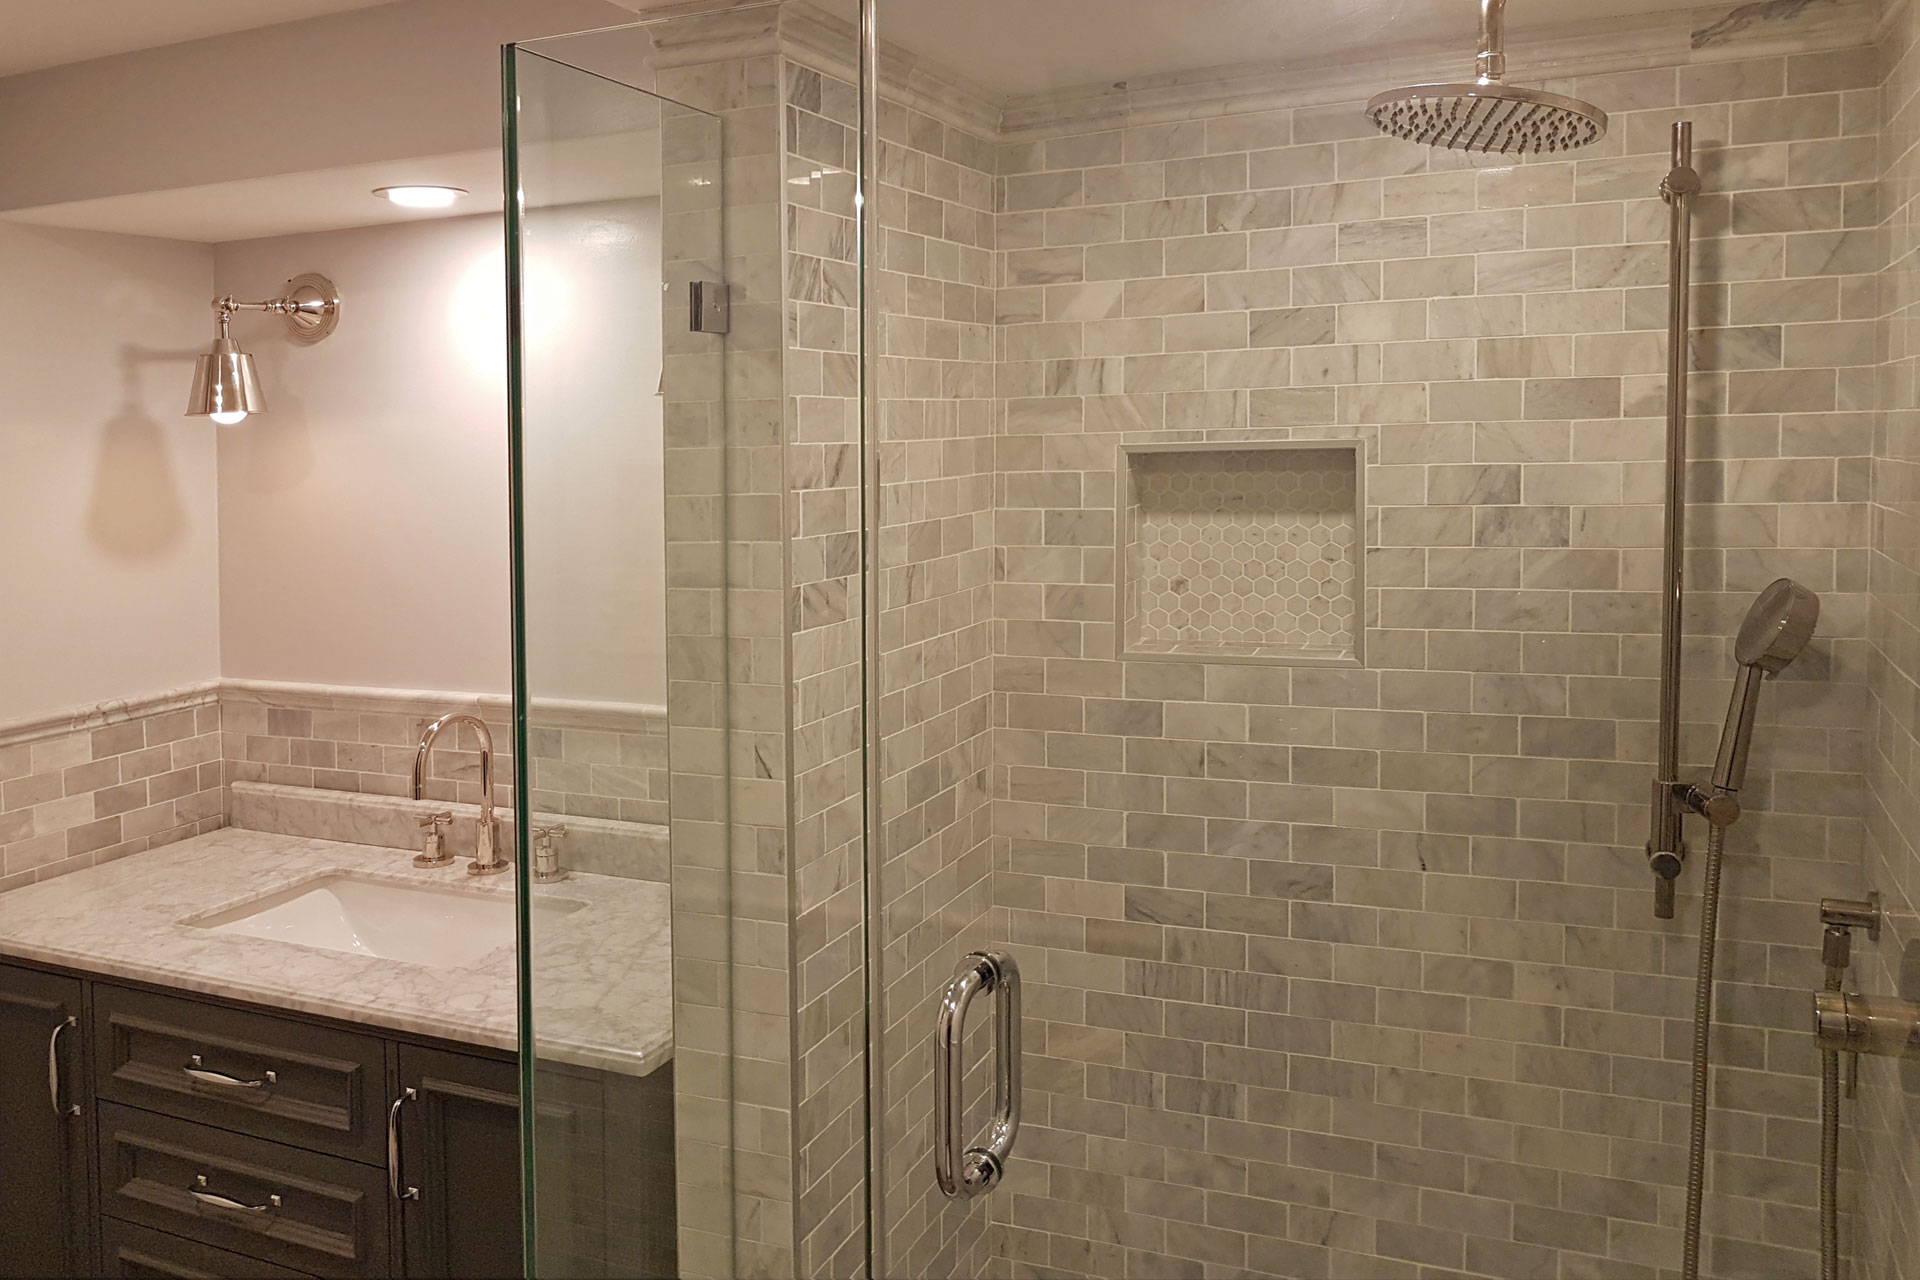 Tile Installation and Showers Calgary